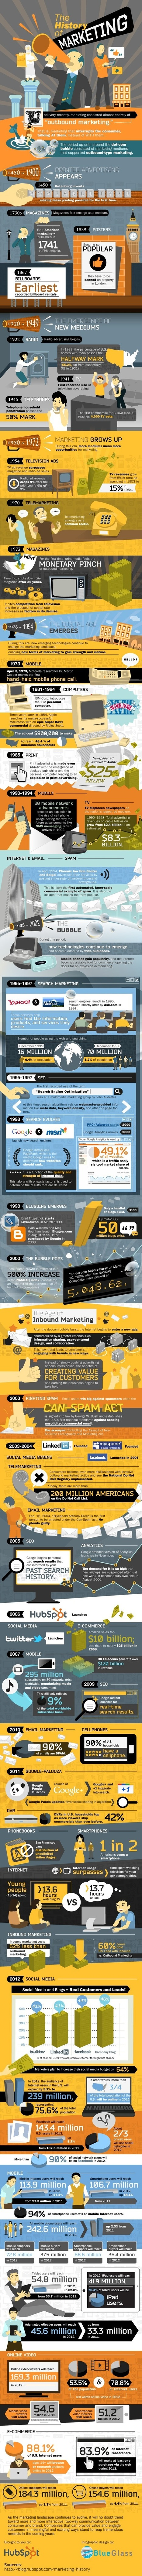 The History of Marketing: An Exhaustive Timeline #Infographic | WEBOLUTION! | Scoop.it